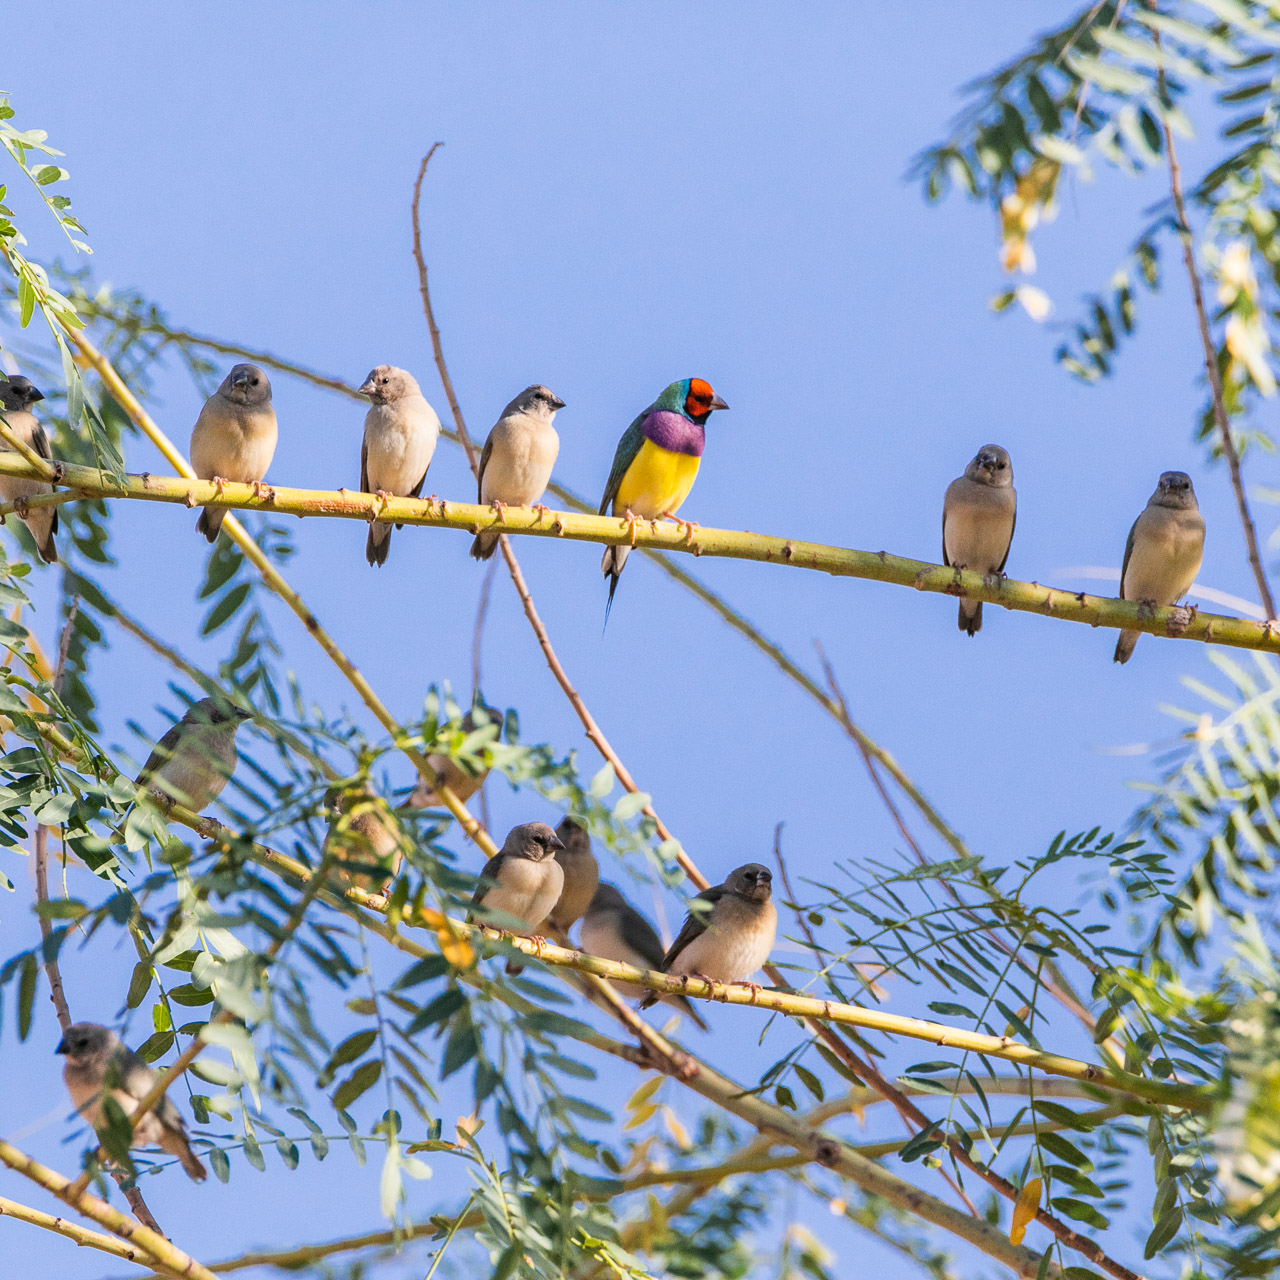 A flock of juvenile gouldian finches with one adult male.